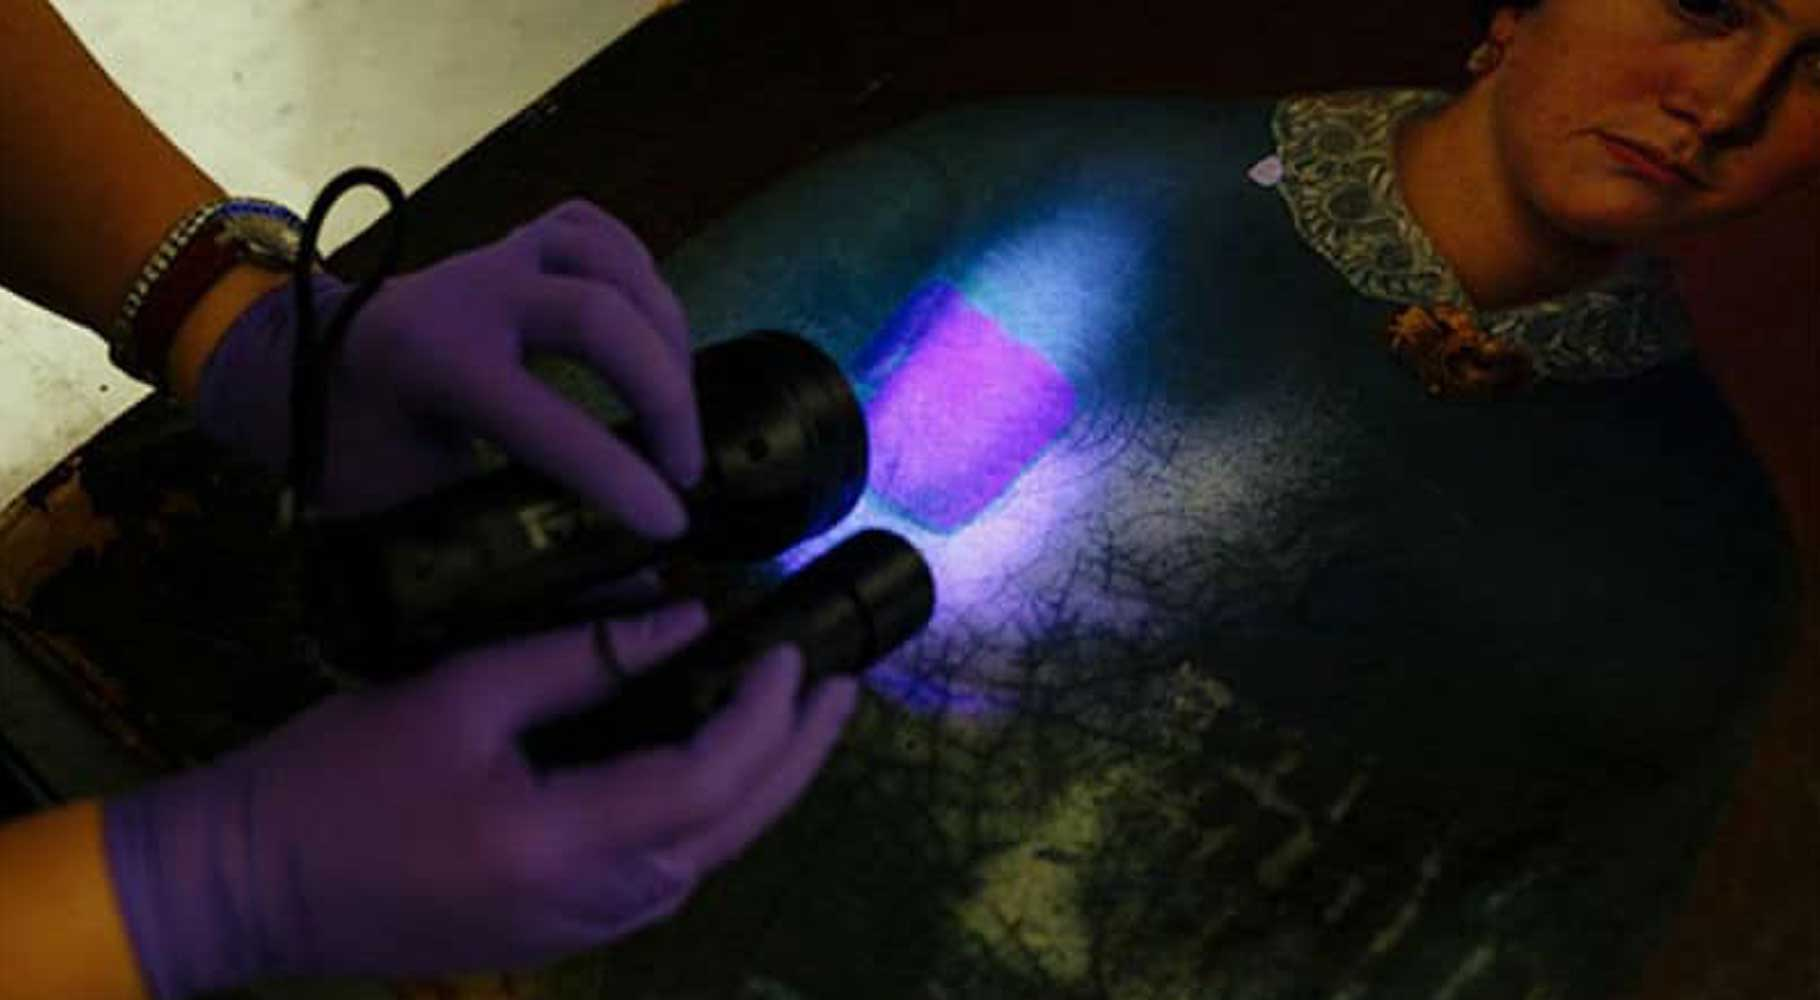 inspecting oil painting under uv light for hidden features